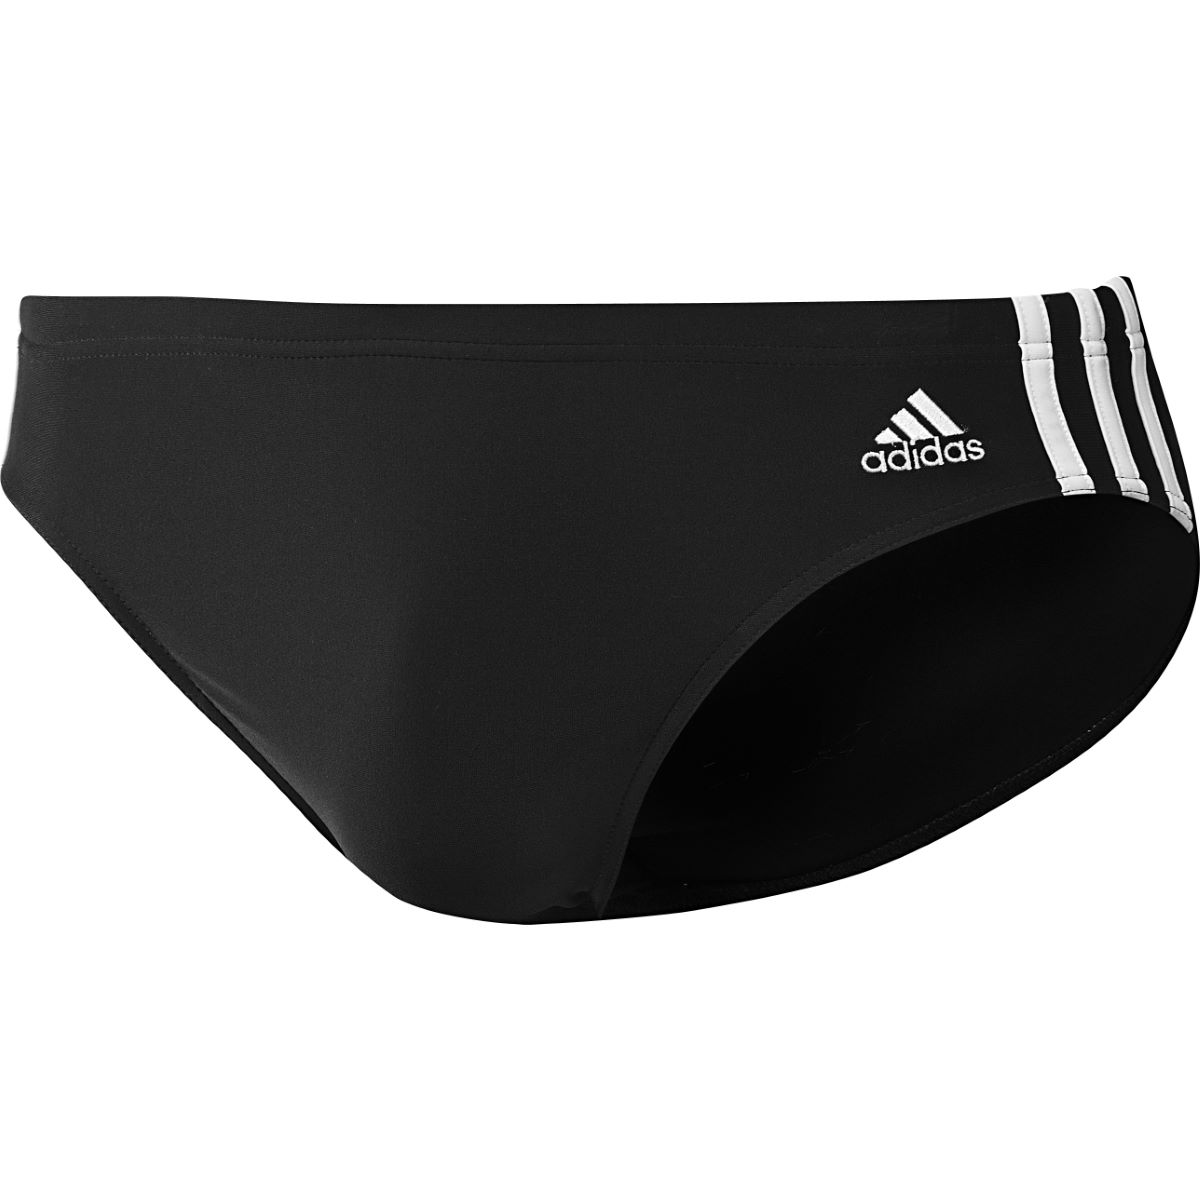 3bd4938ec4 ... Black / Bianco and Black / Squalo? No information is given with the  product. Products related to my question. Adidas Infinitex 3 Stripe  Authentic Trunk